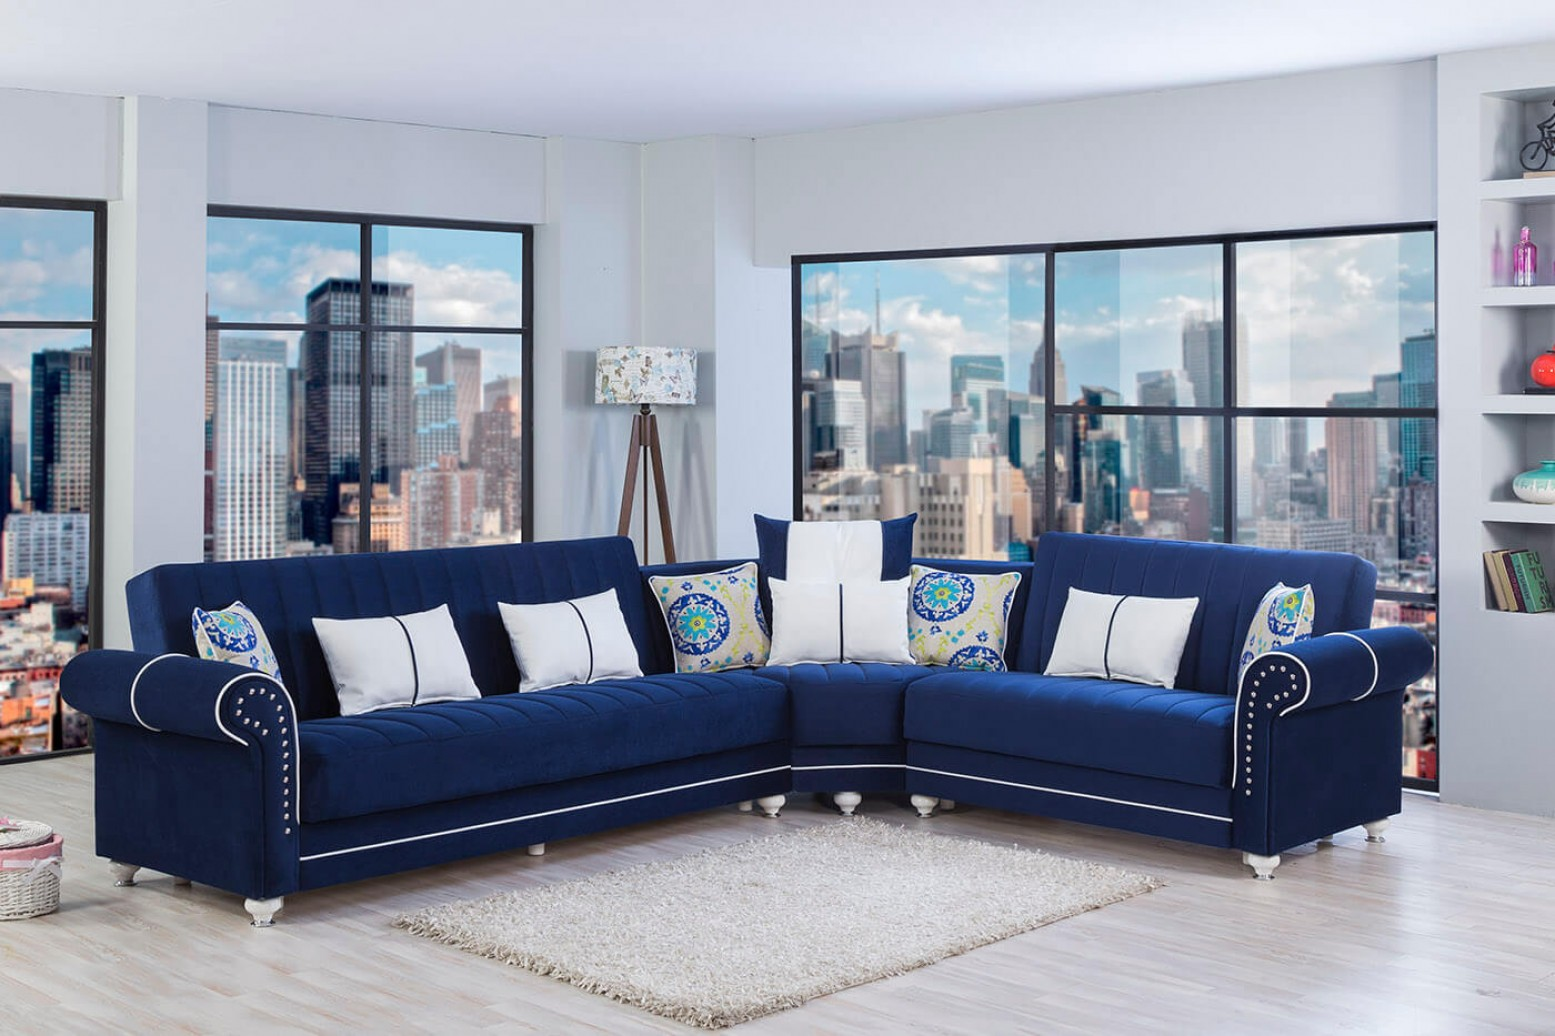 Royal Home Sectional Sofa Riva Dark Blue By Casamode